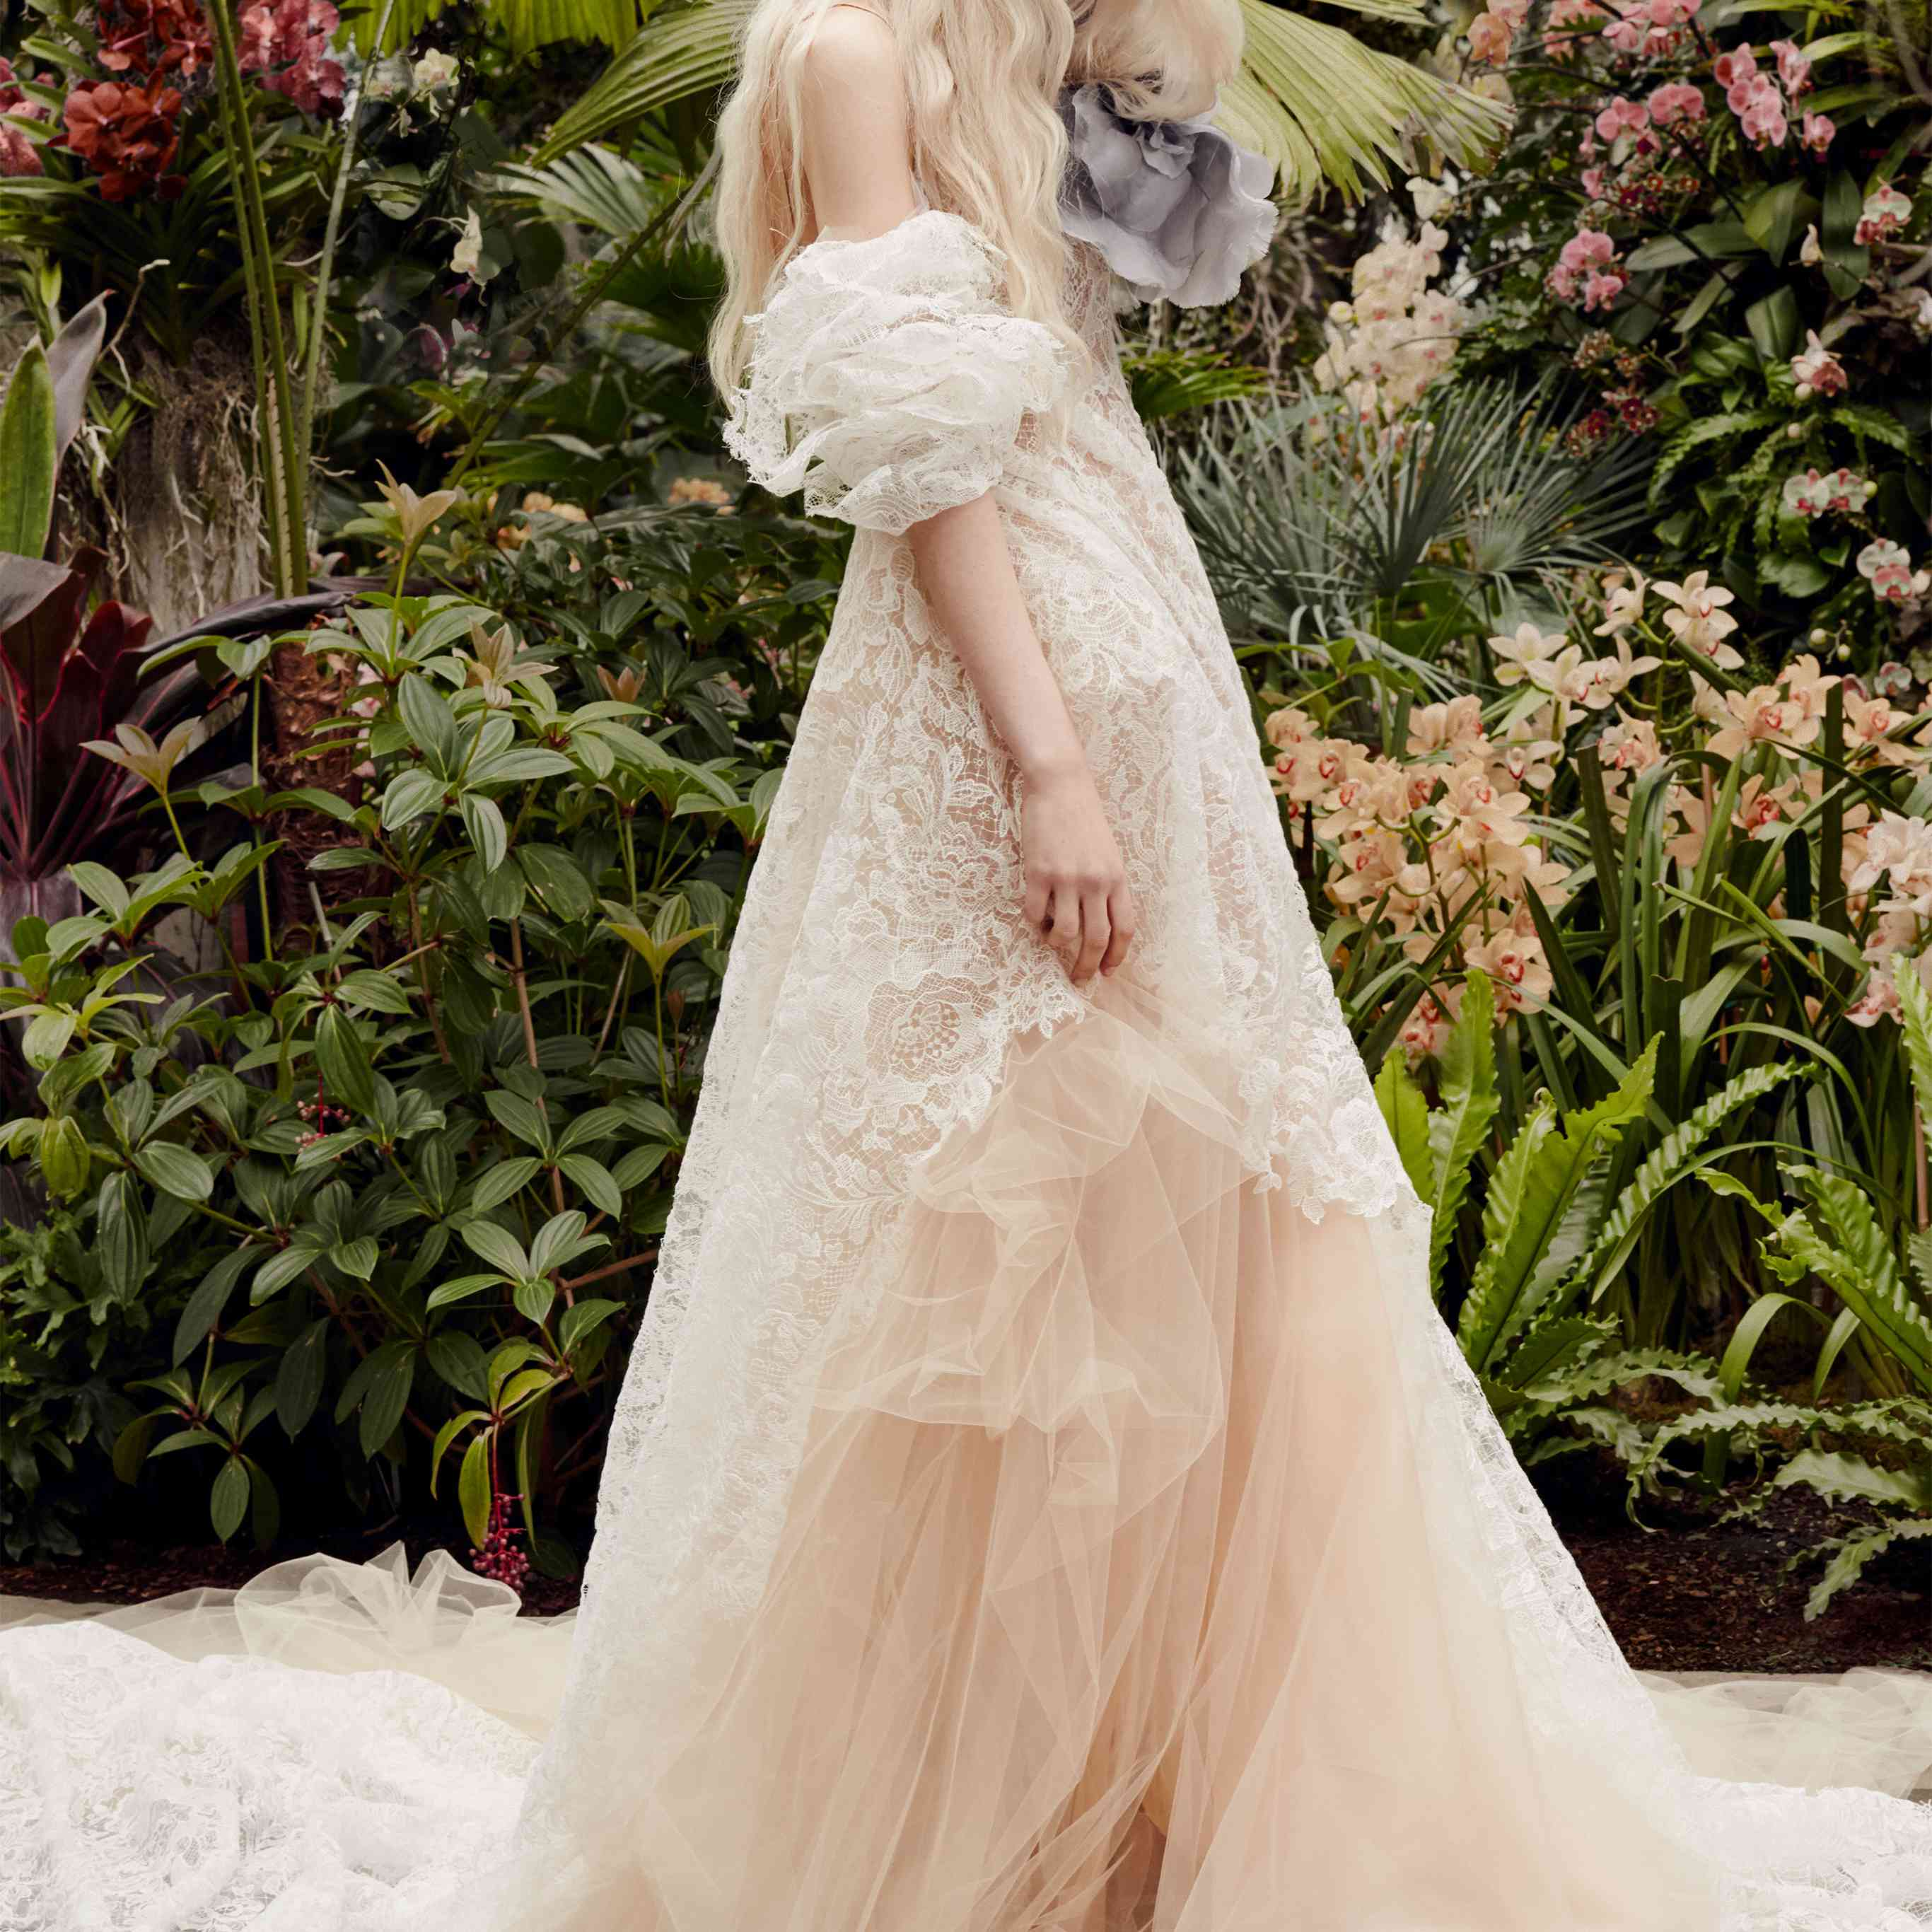 Model in white lace and nude tulle off-the-shoulder gown with dramatic puff sleeves